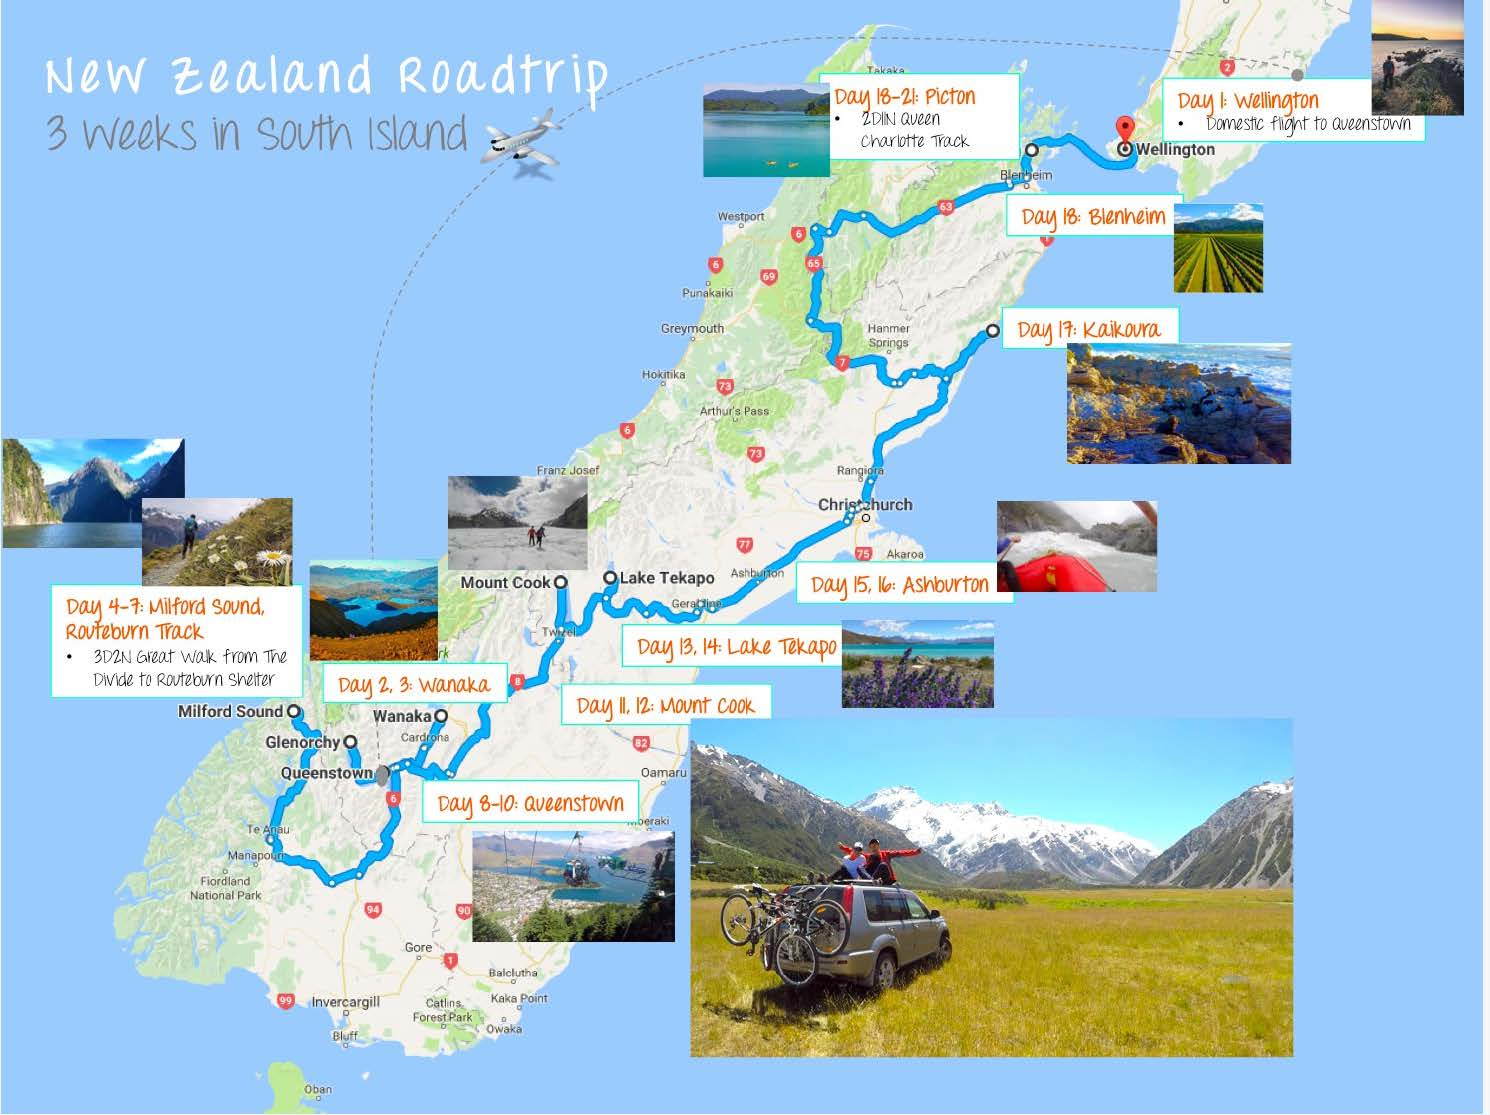 3 weeks in new zealand south island our itinerary the. Black Bedroom Furniture Sets. Home Design Ideas